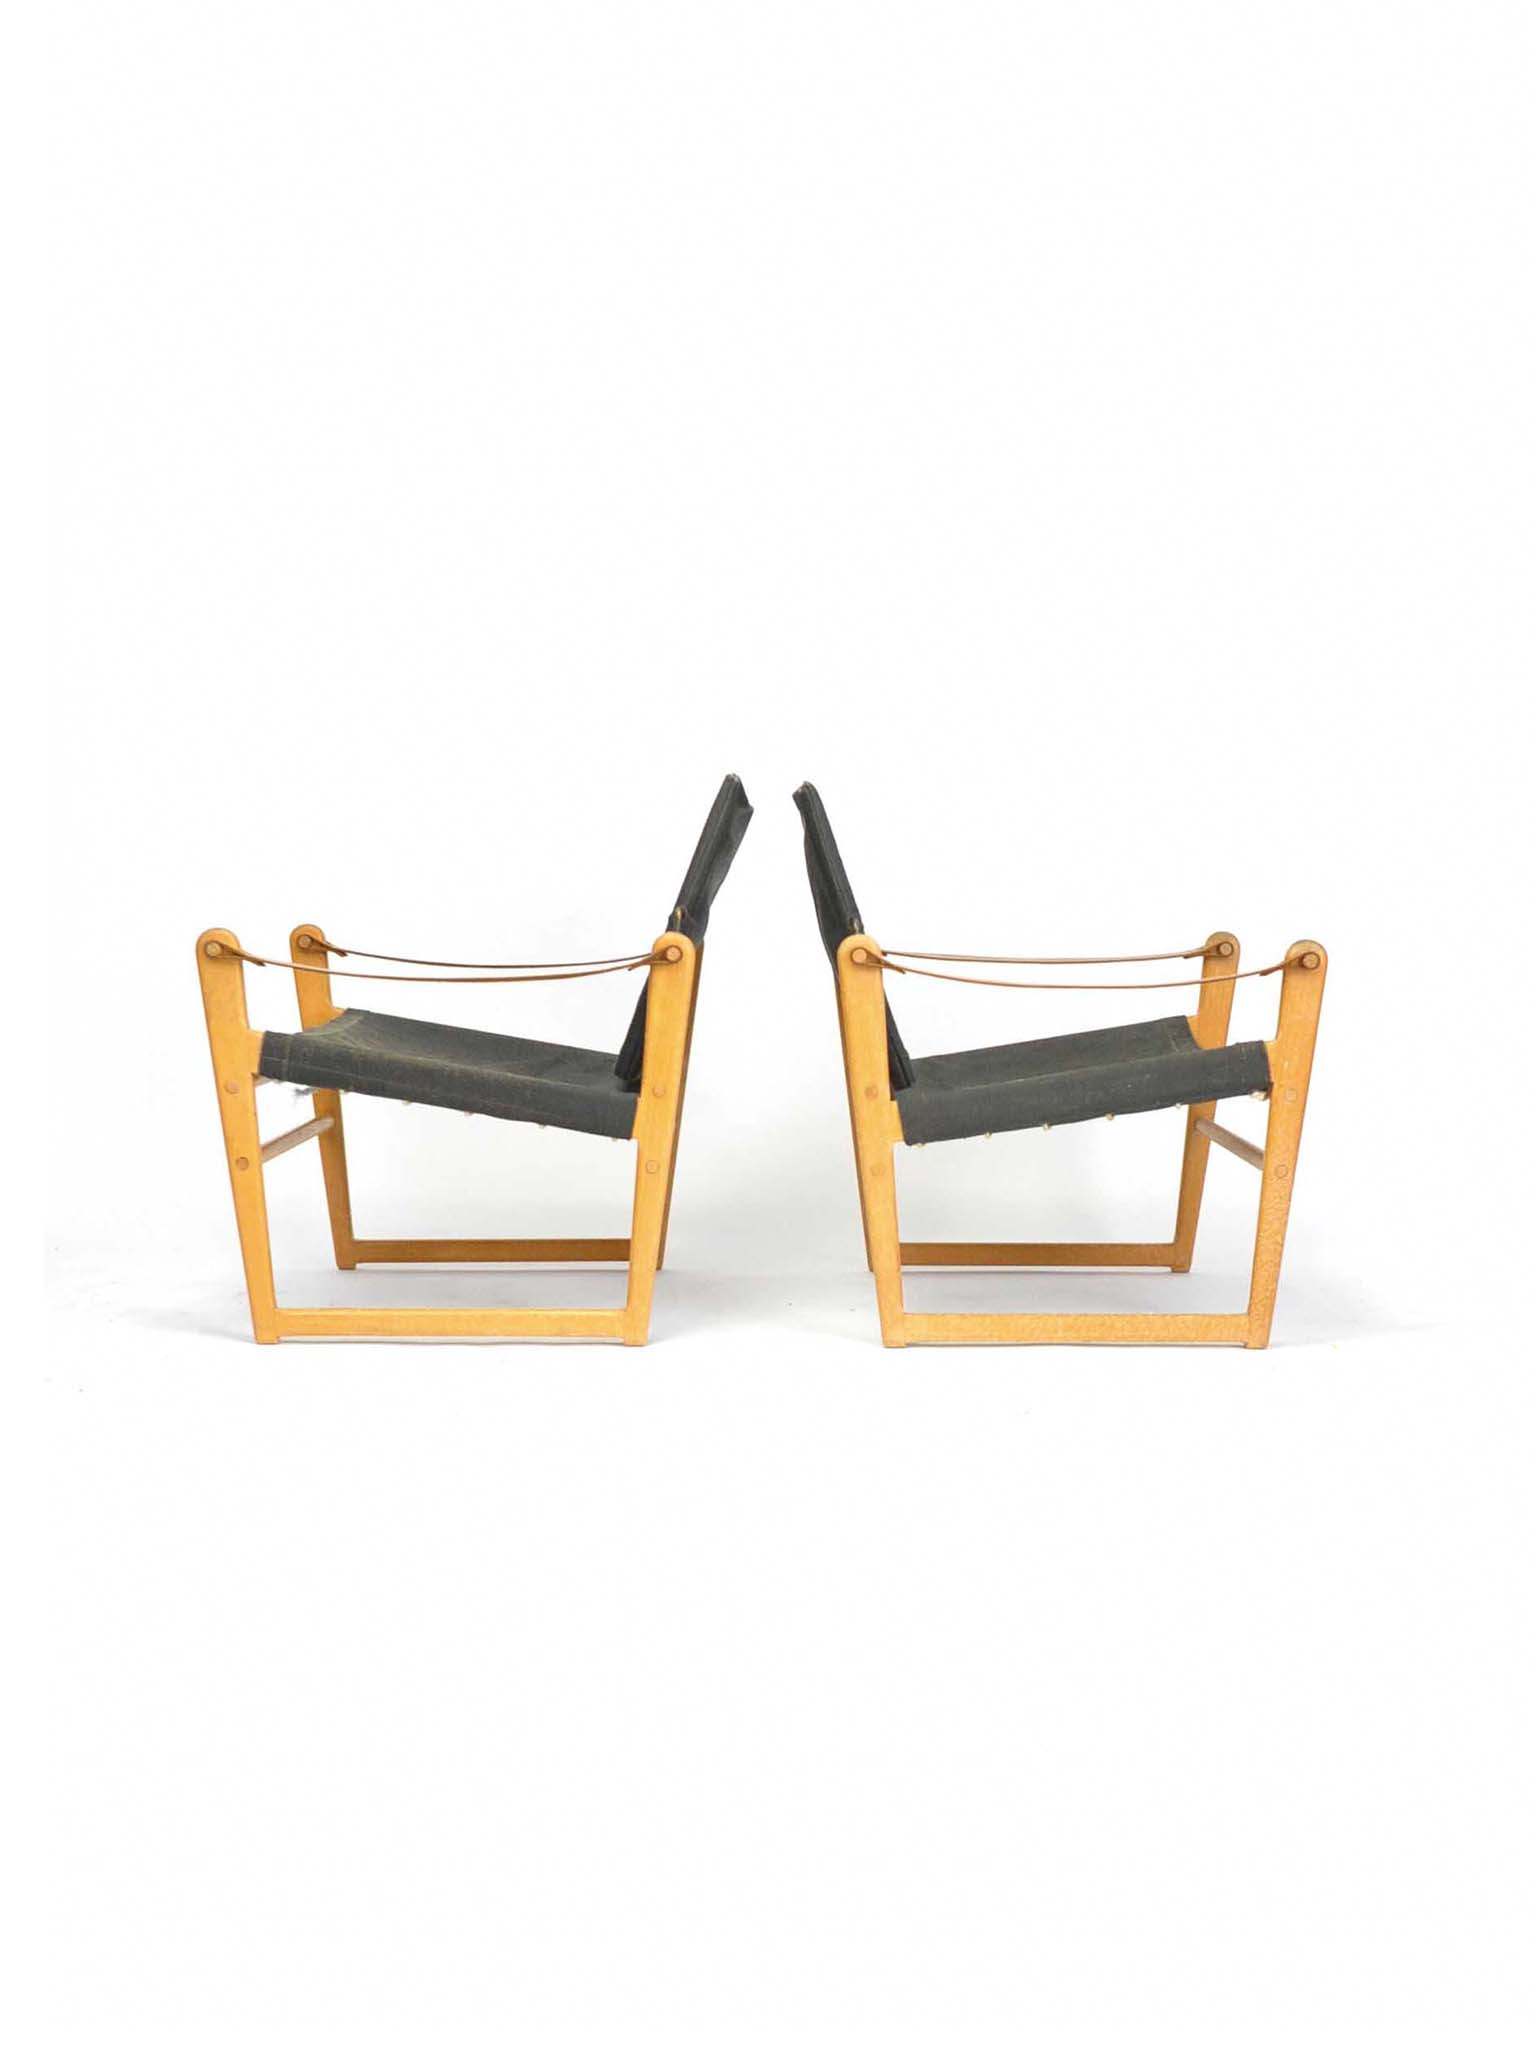 PAIR OF CIKADA EASY CHAIRS BY BENGT RUDA